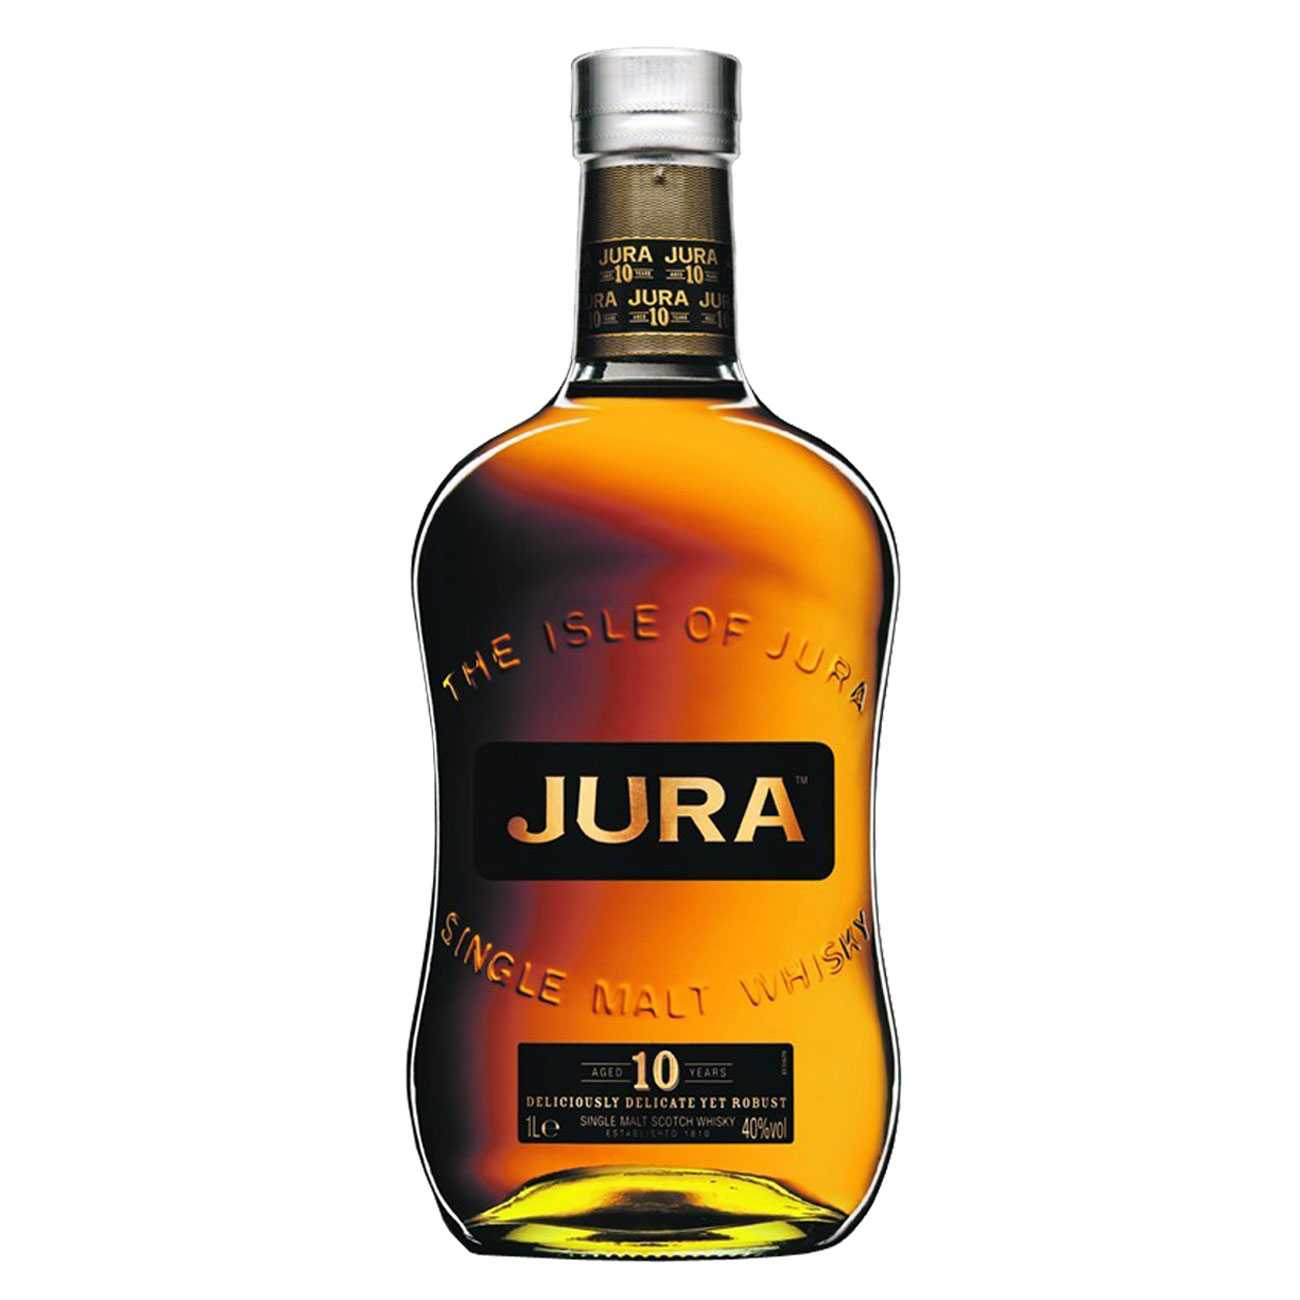 Whisky scotian, 10 YEAR OLD 1000 ML, Isle Of Jura